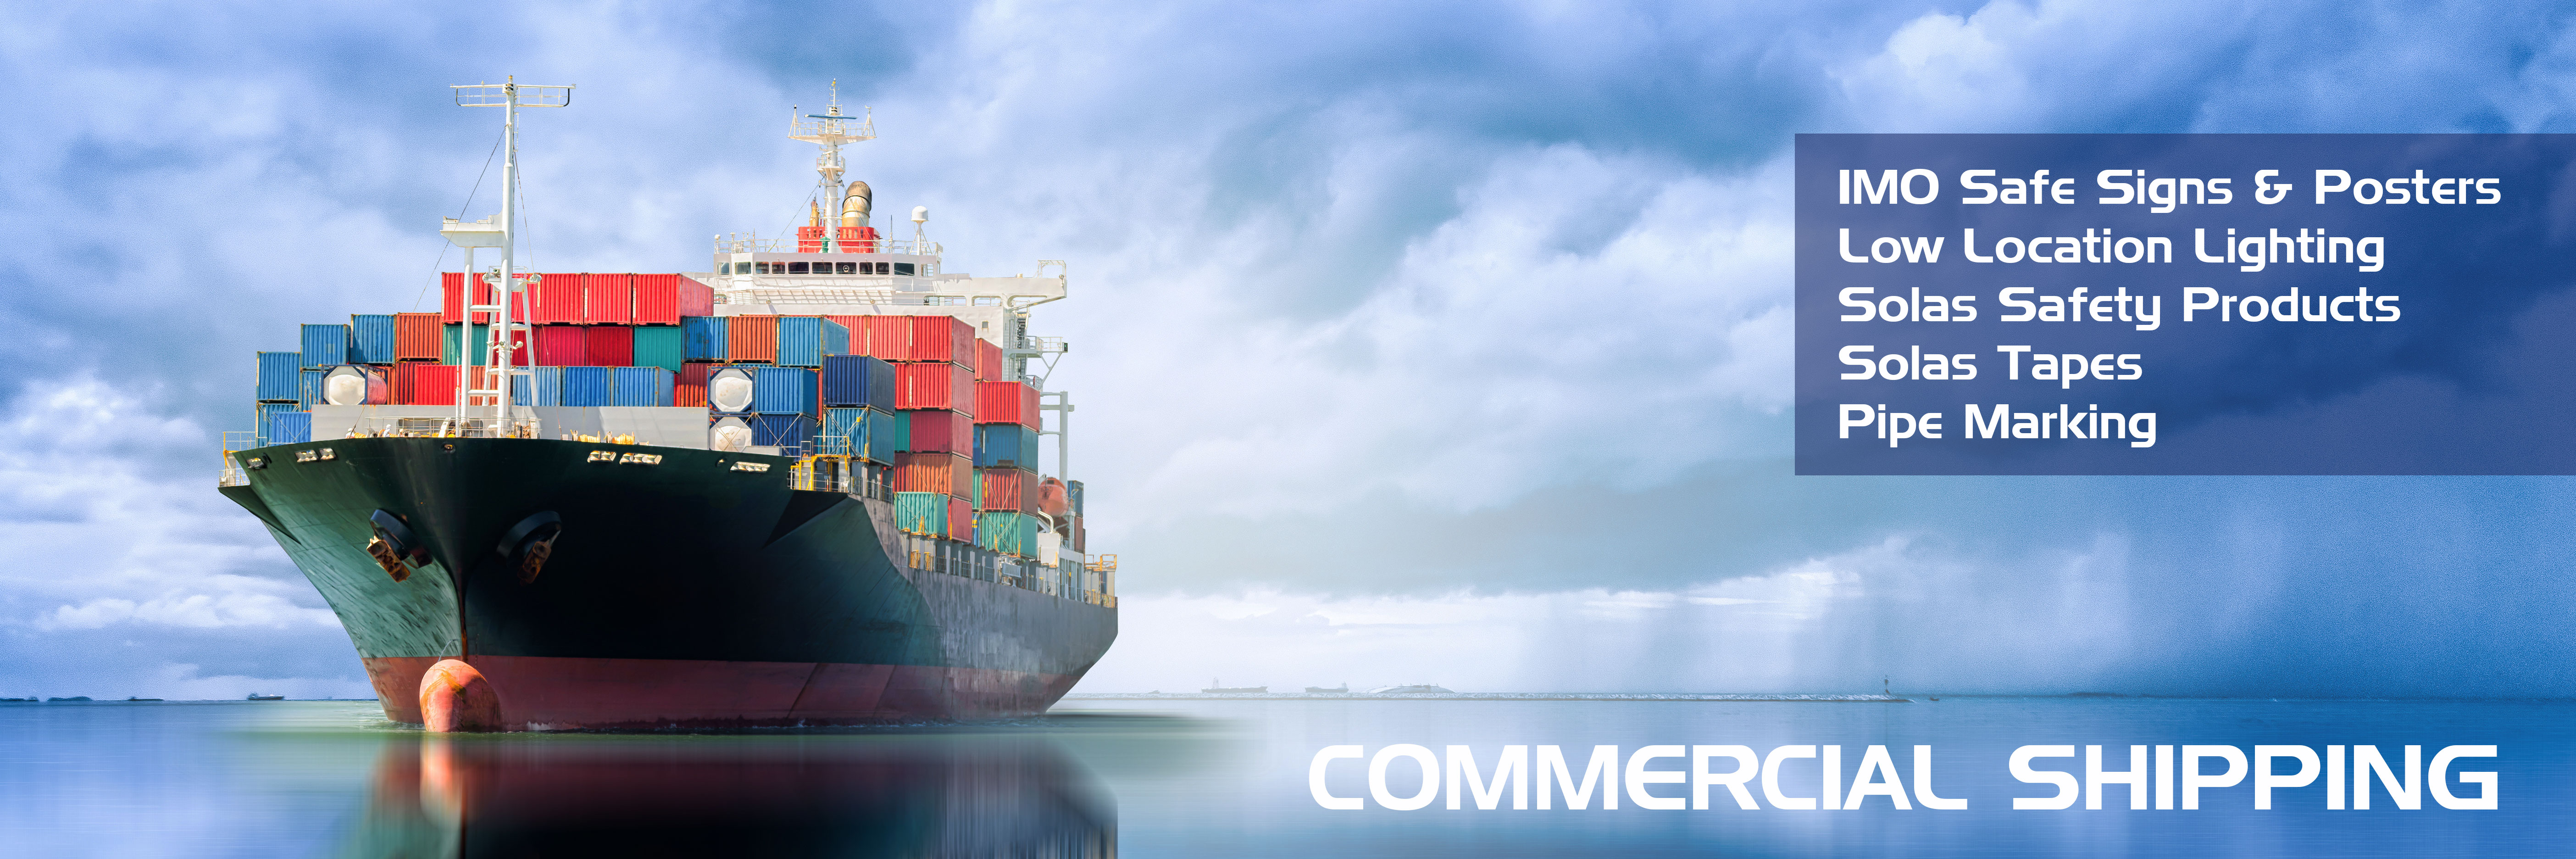 COMMERCIAL SHIPPING T-ISS Safety Suppliers